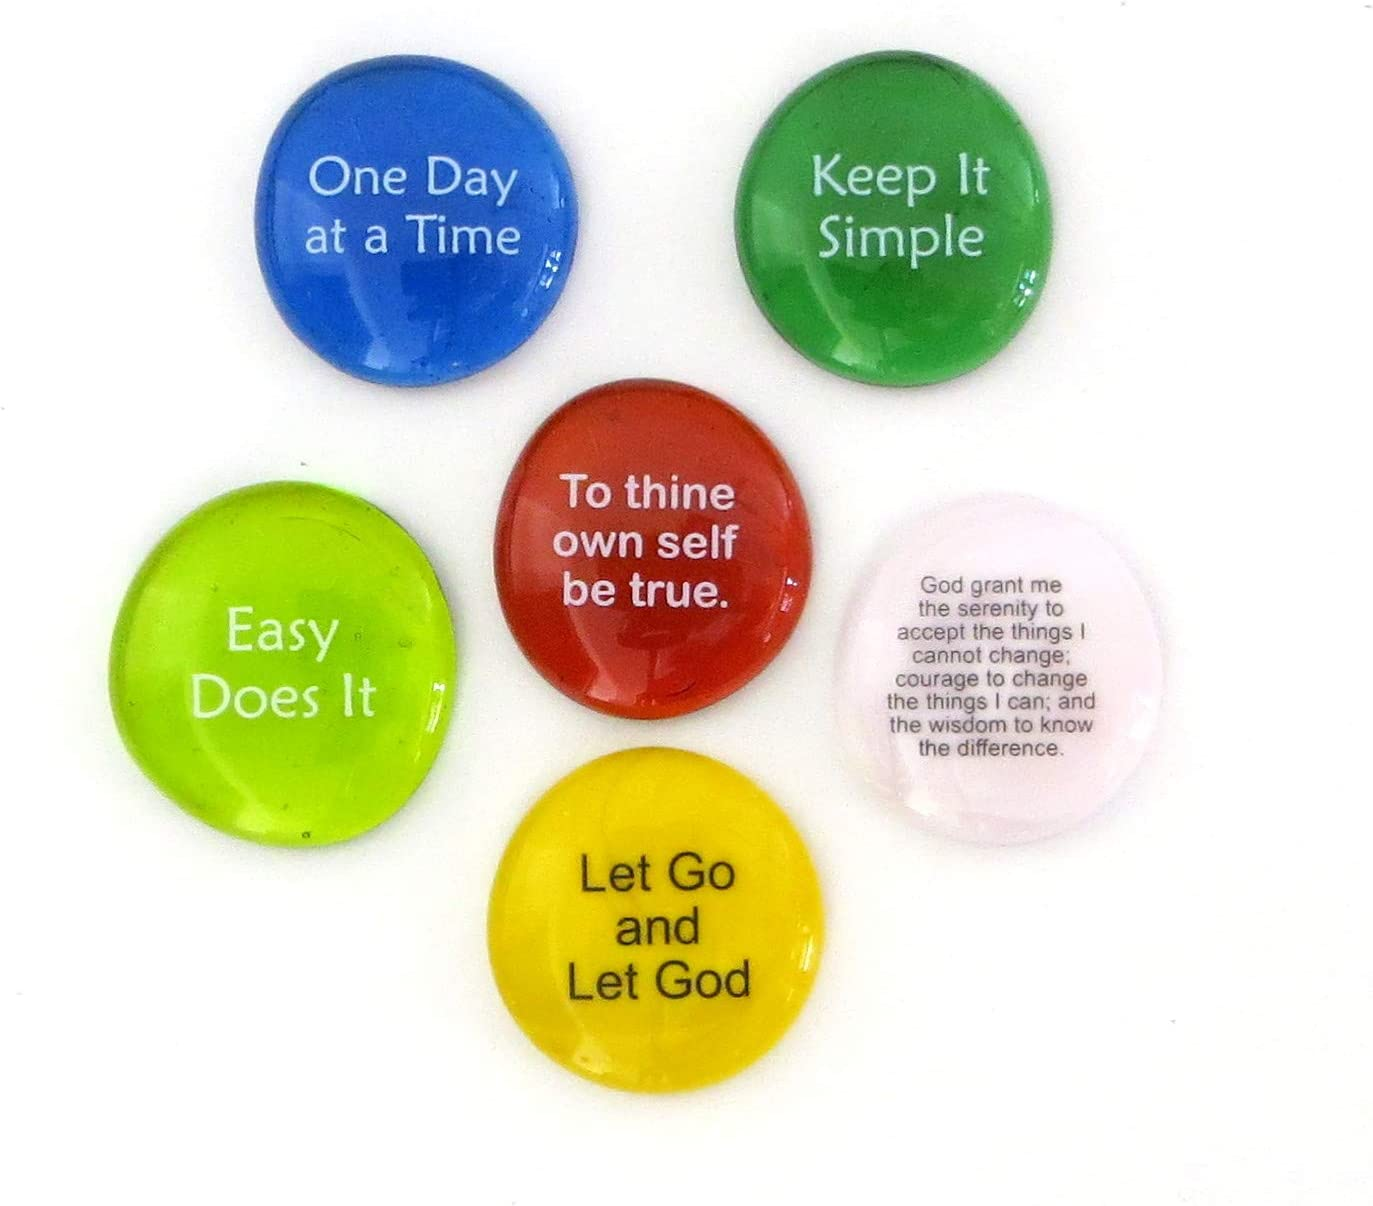 Lifeforce Glass Recovery Super-cheap Stones 6 Daily Encourage Reminders Baltimore Mall for